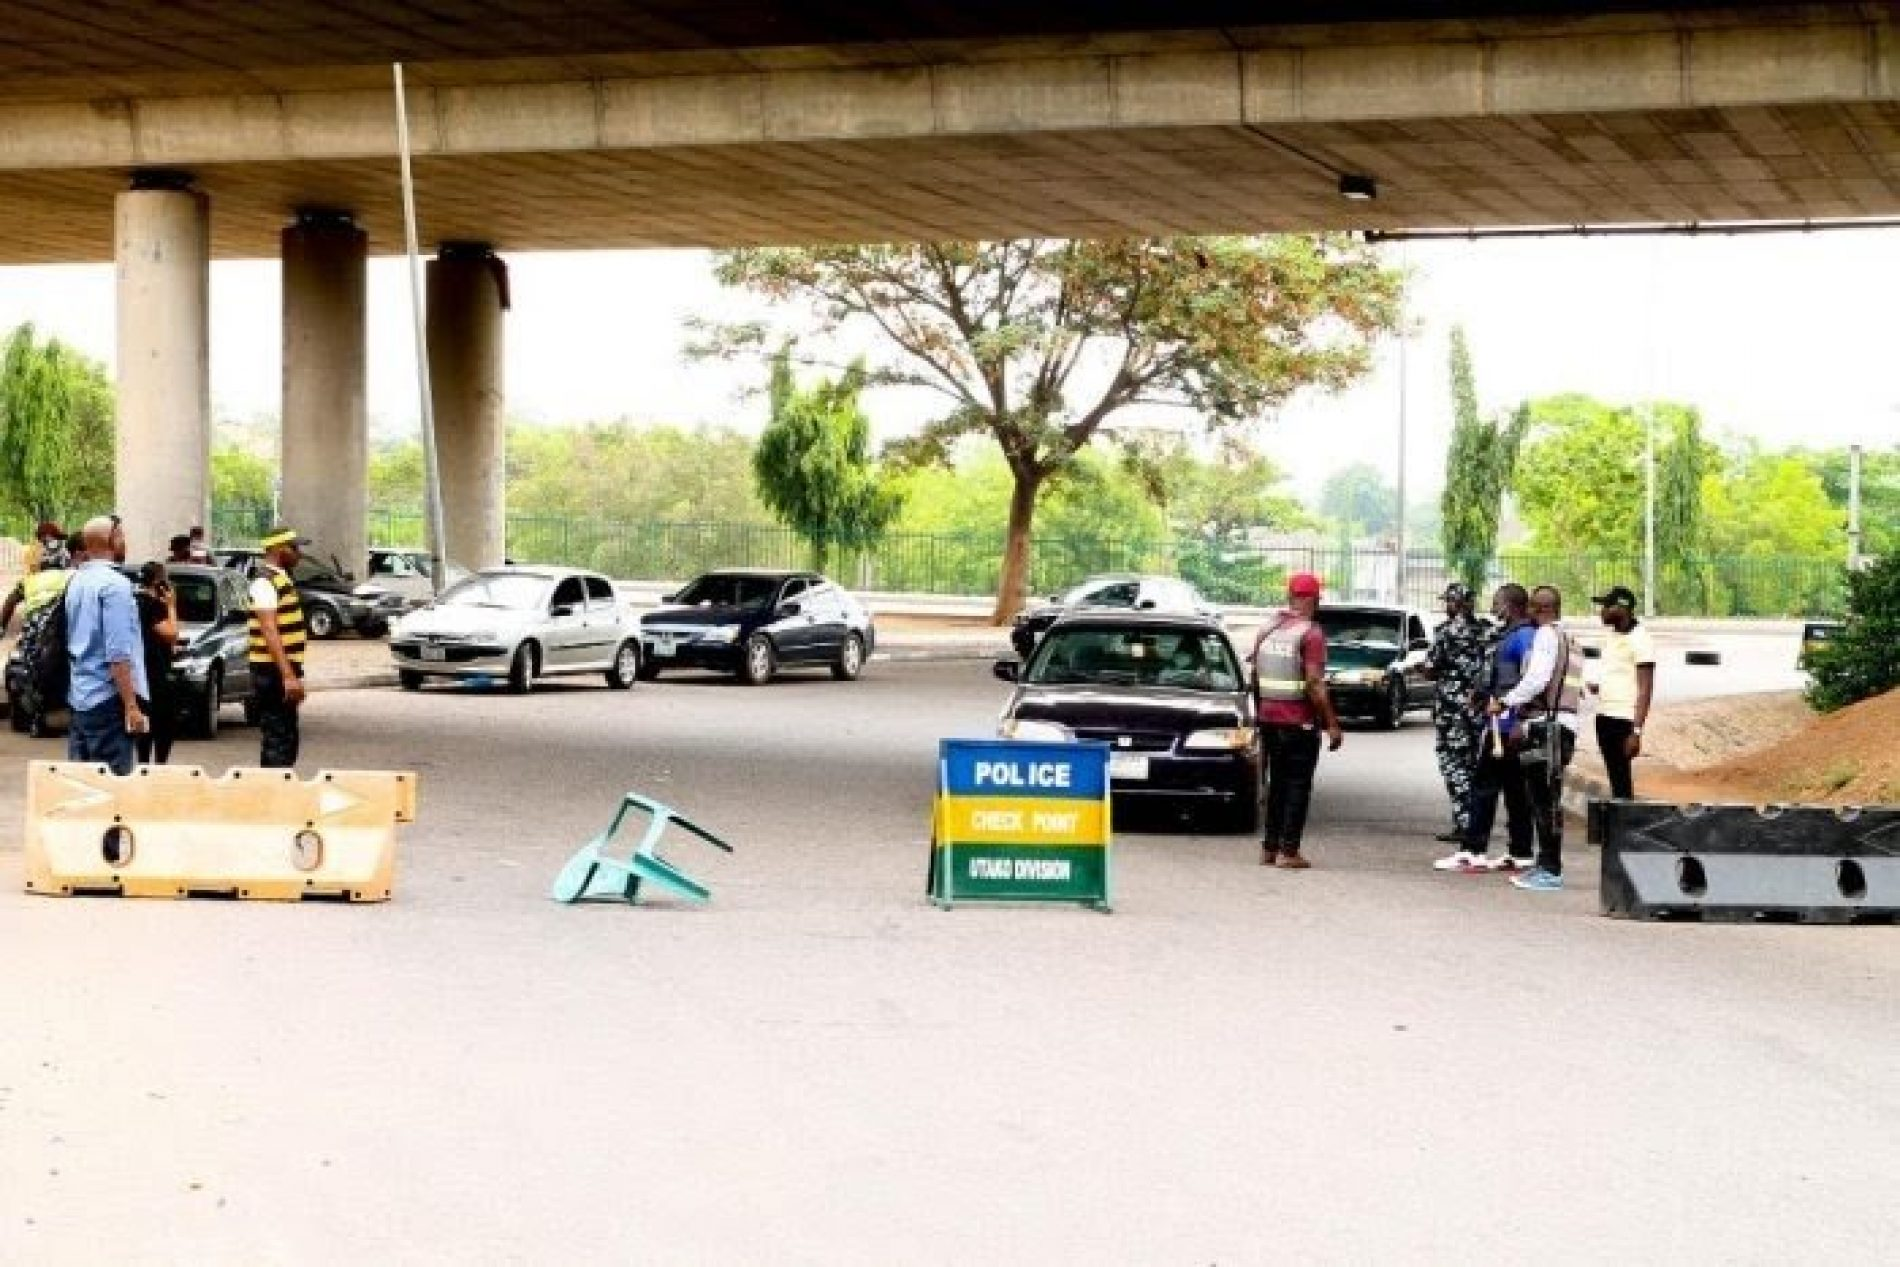 Covid-19 in Nigeria: Lockdown Still Ongoing in Lagos, Abuja, others says FG